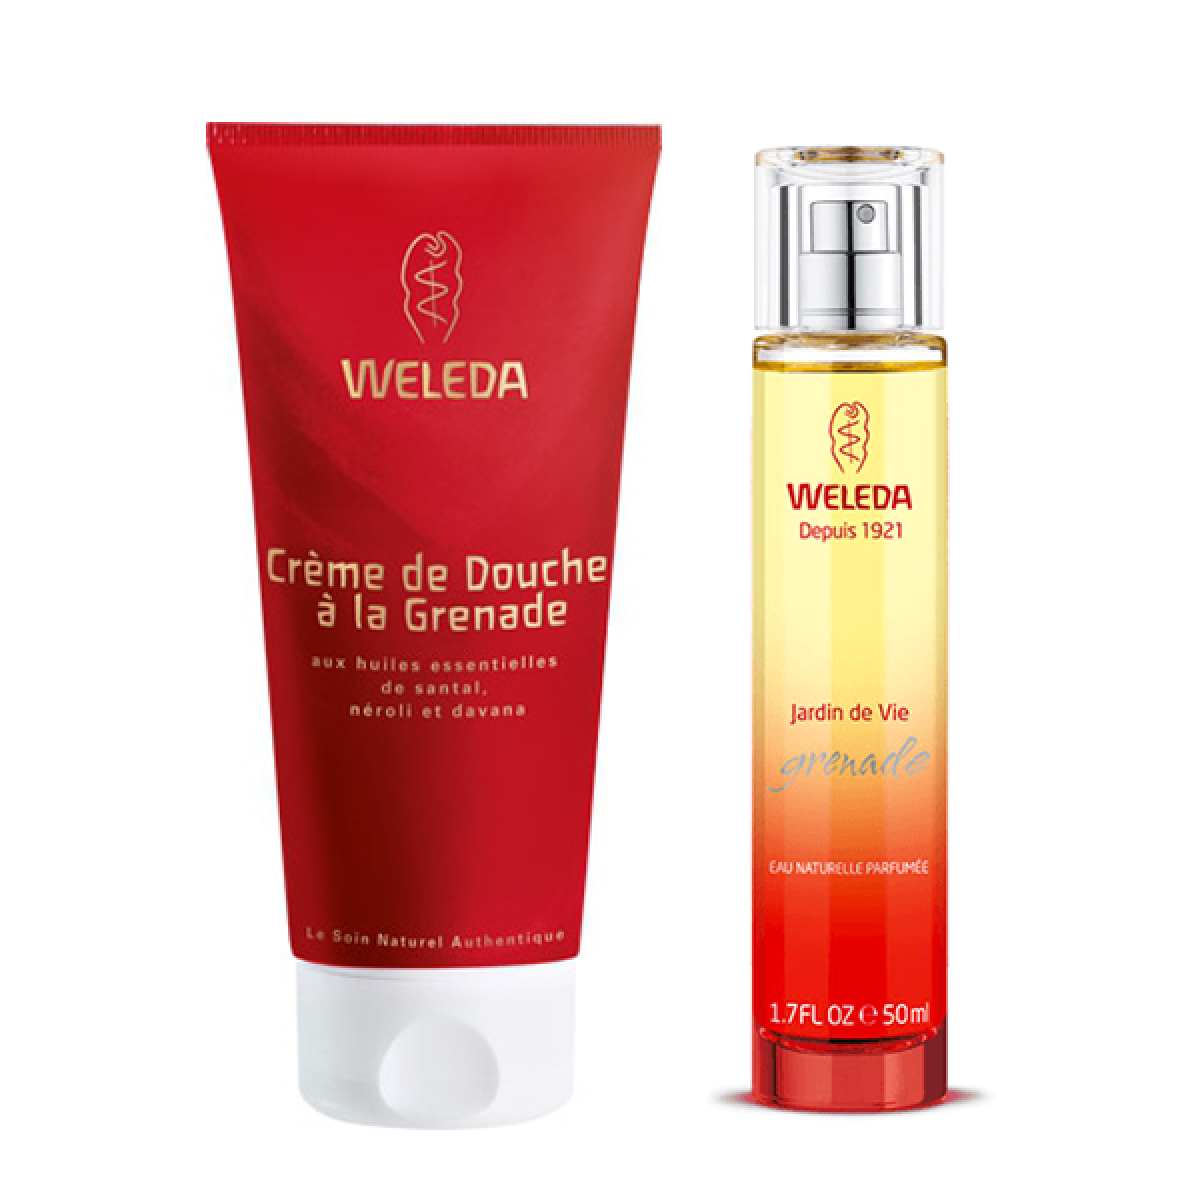 weleda grenade coffret cadeau parfum jardin de vie cr me de douche parapharmacie pharmarket. Black Bedroom Furniture Sets. Home Design Ideas